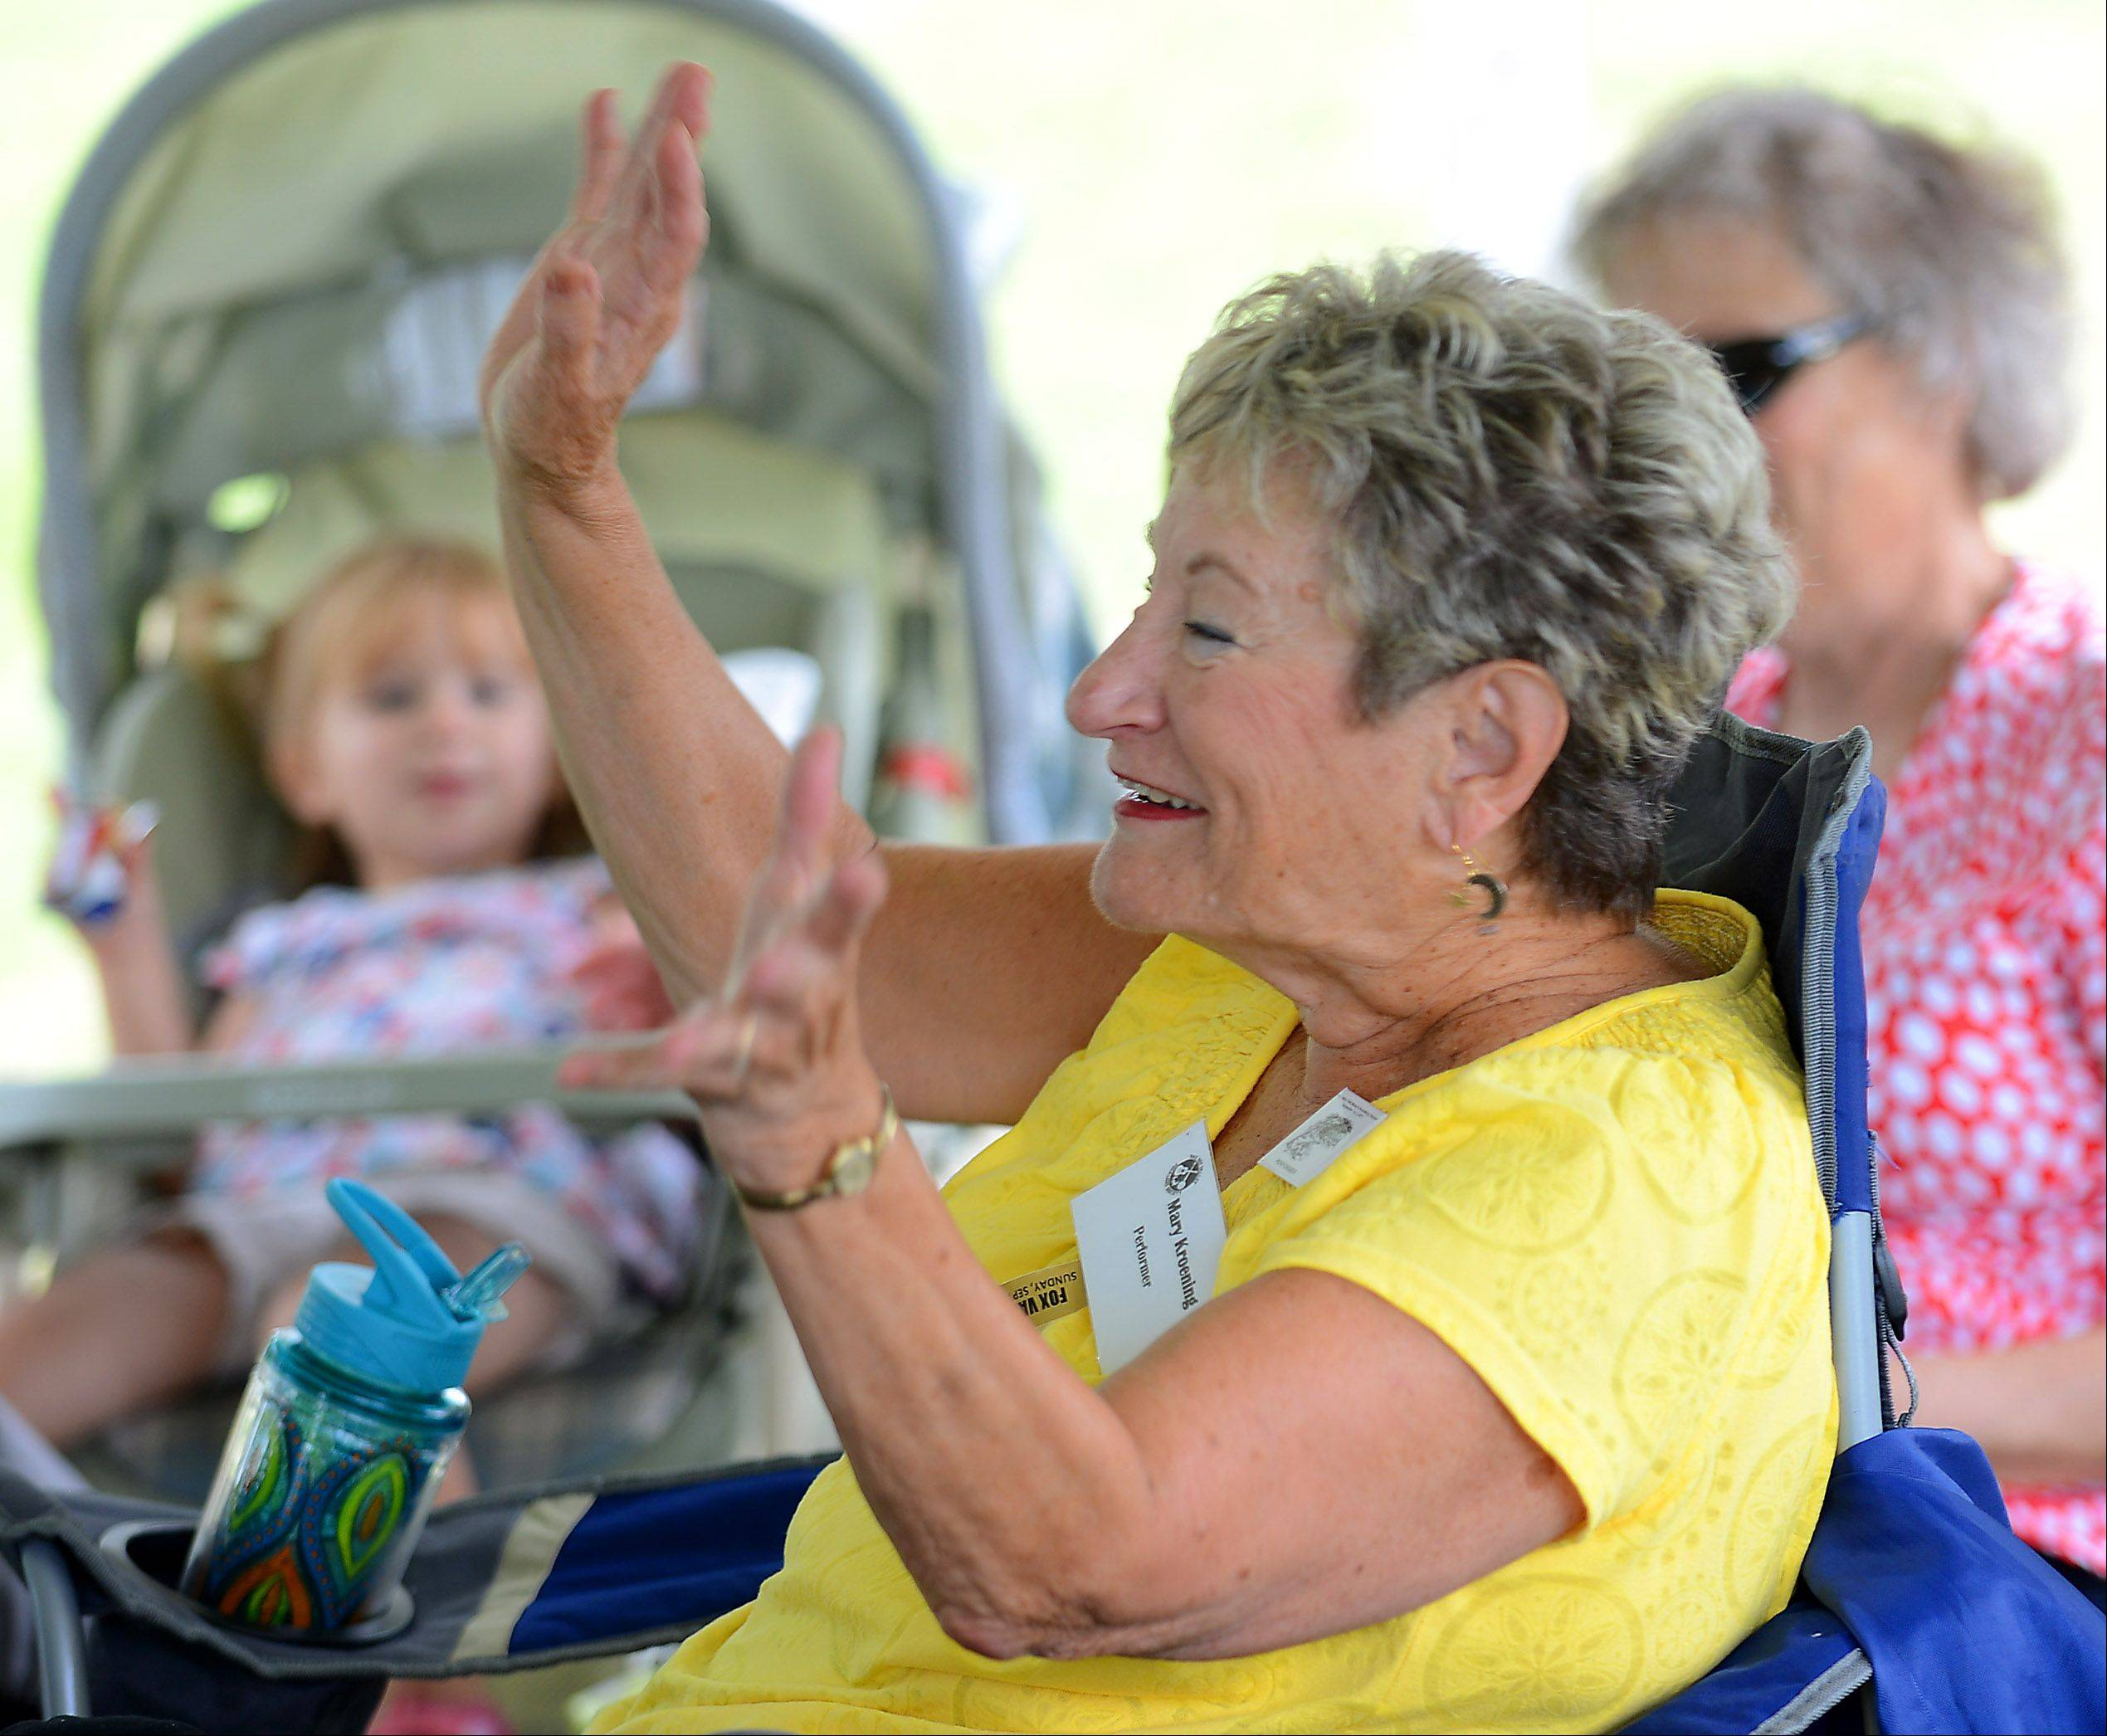 Mary Kroening of Naperville plays along with a storyteller on stage in raising a commotion during the 37th annual Fox Valley Folk Music and Storytelling Festival at Island Park in Geneva Sunday. She's also a storyteller and was going to perform later.